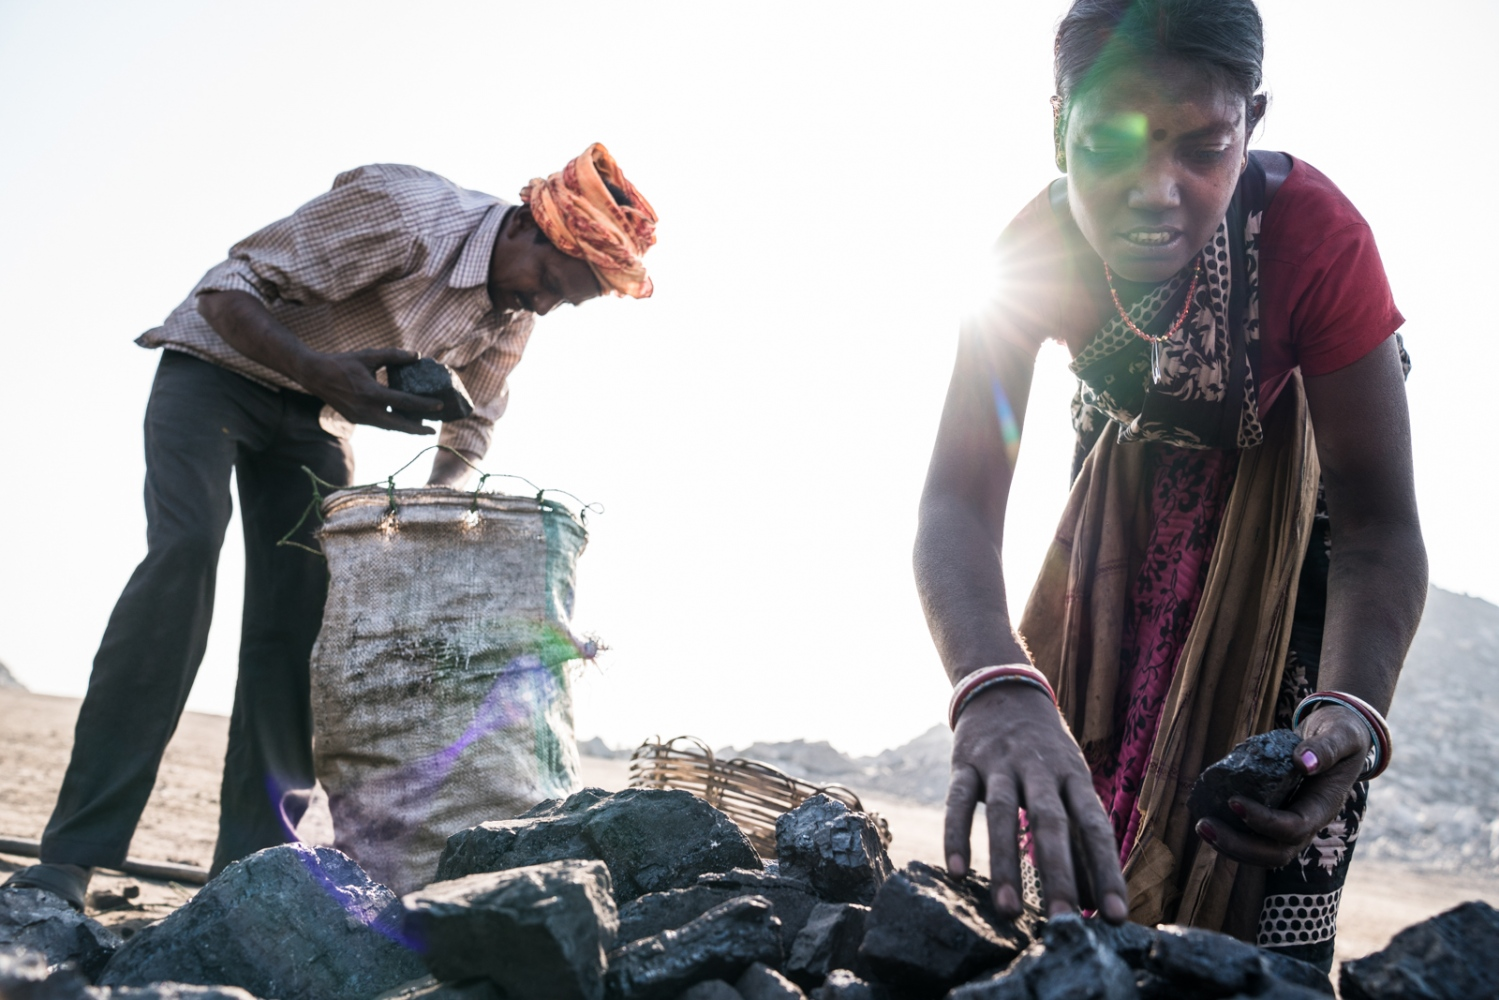 A women and man select the best coal pieces for transport to the black market after scavenging inside a coal mine.